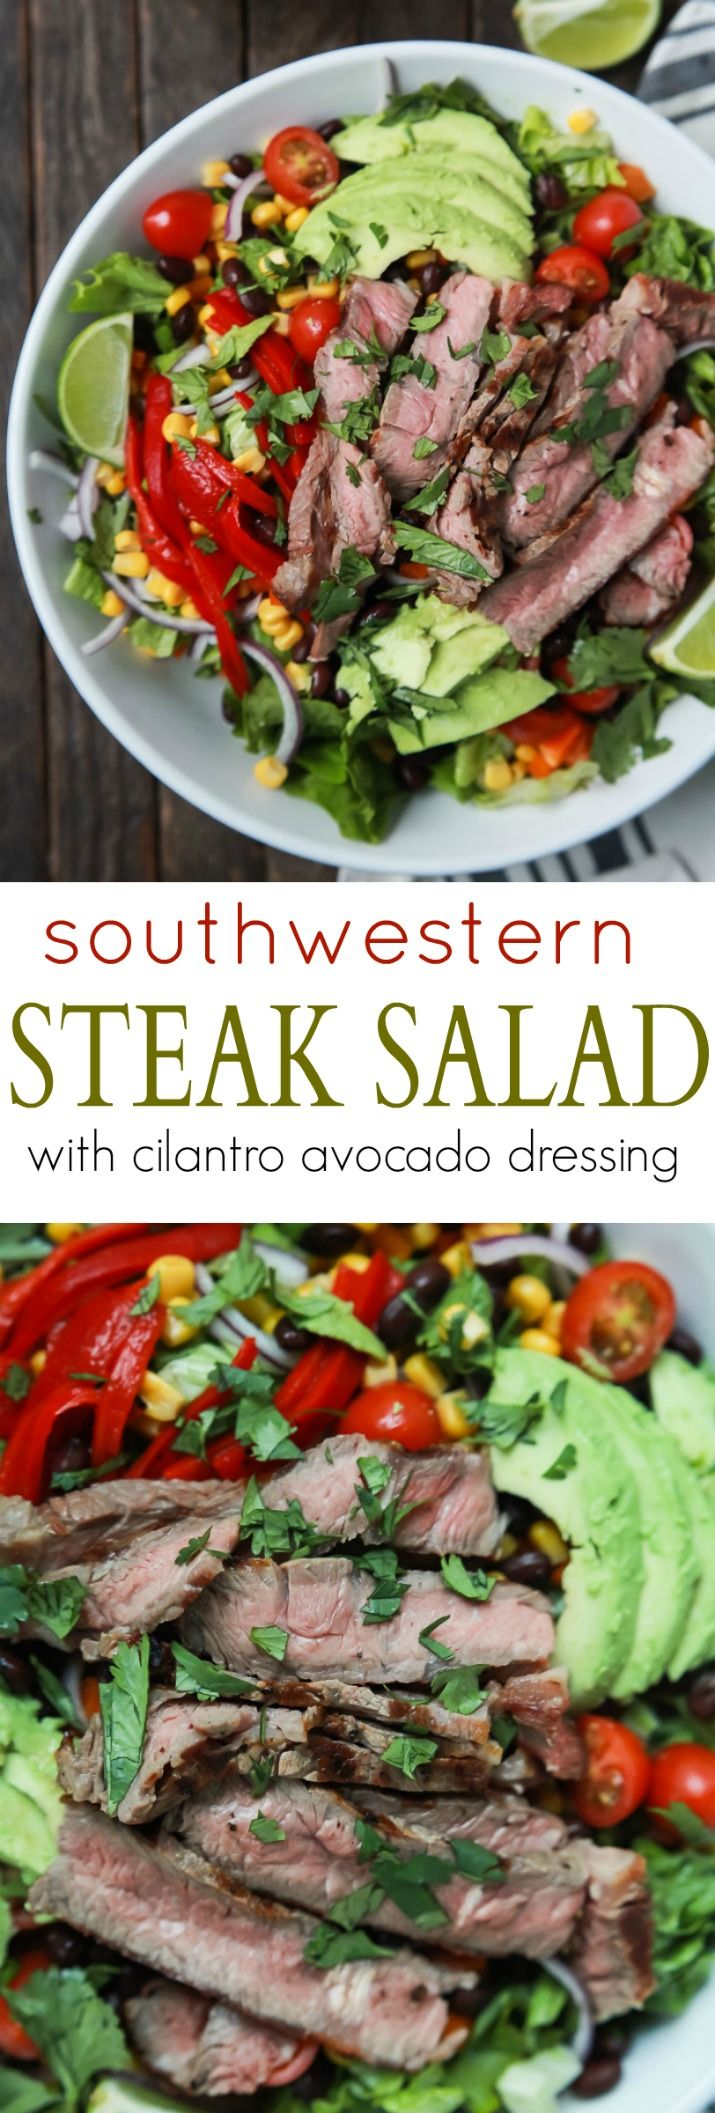 Southwestern Steak Salad with Cilantro Avocado Dressing | Joyfulhealthyeats.com